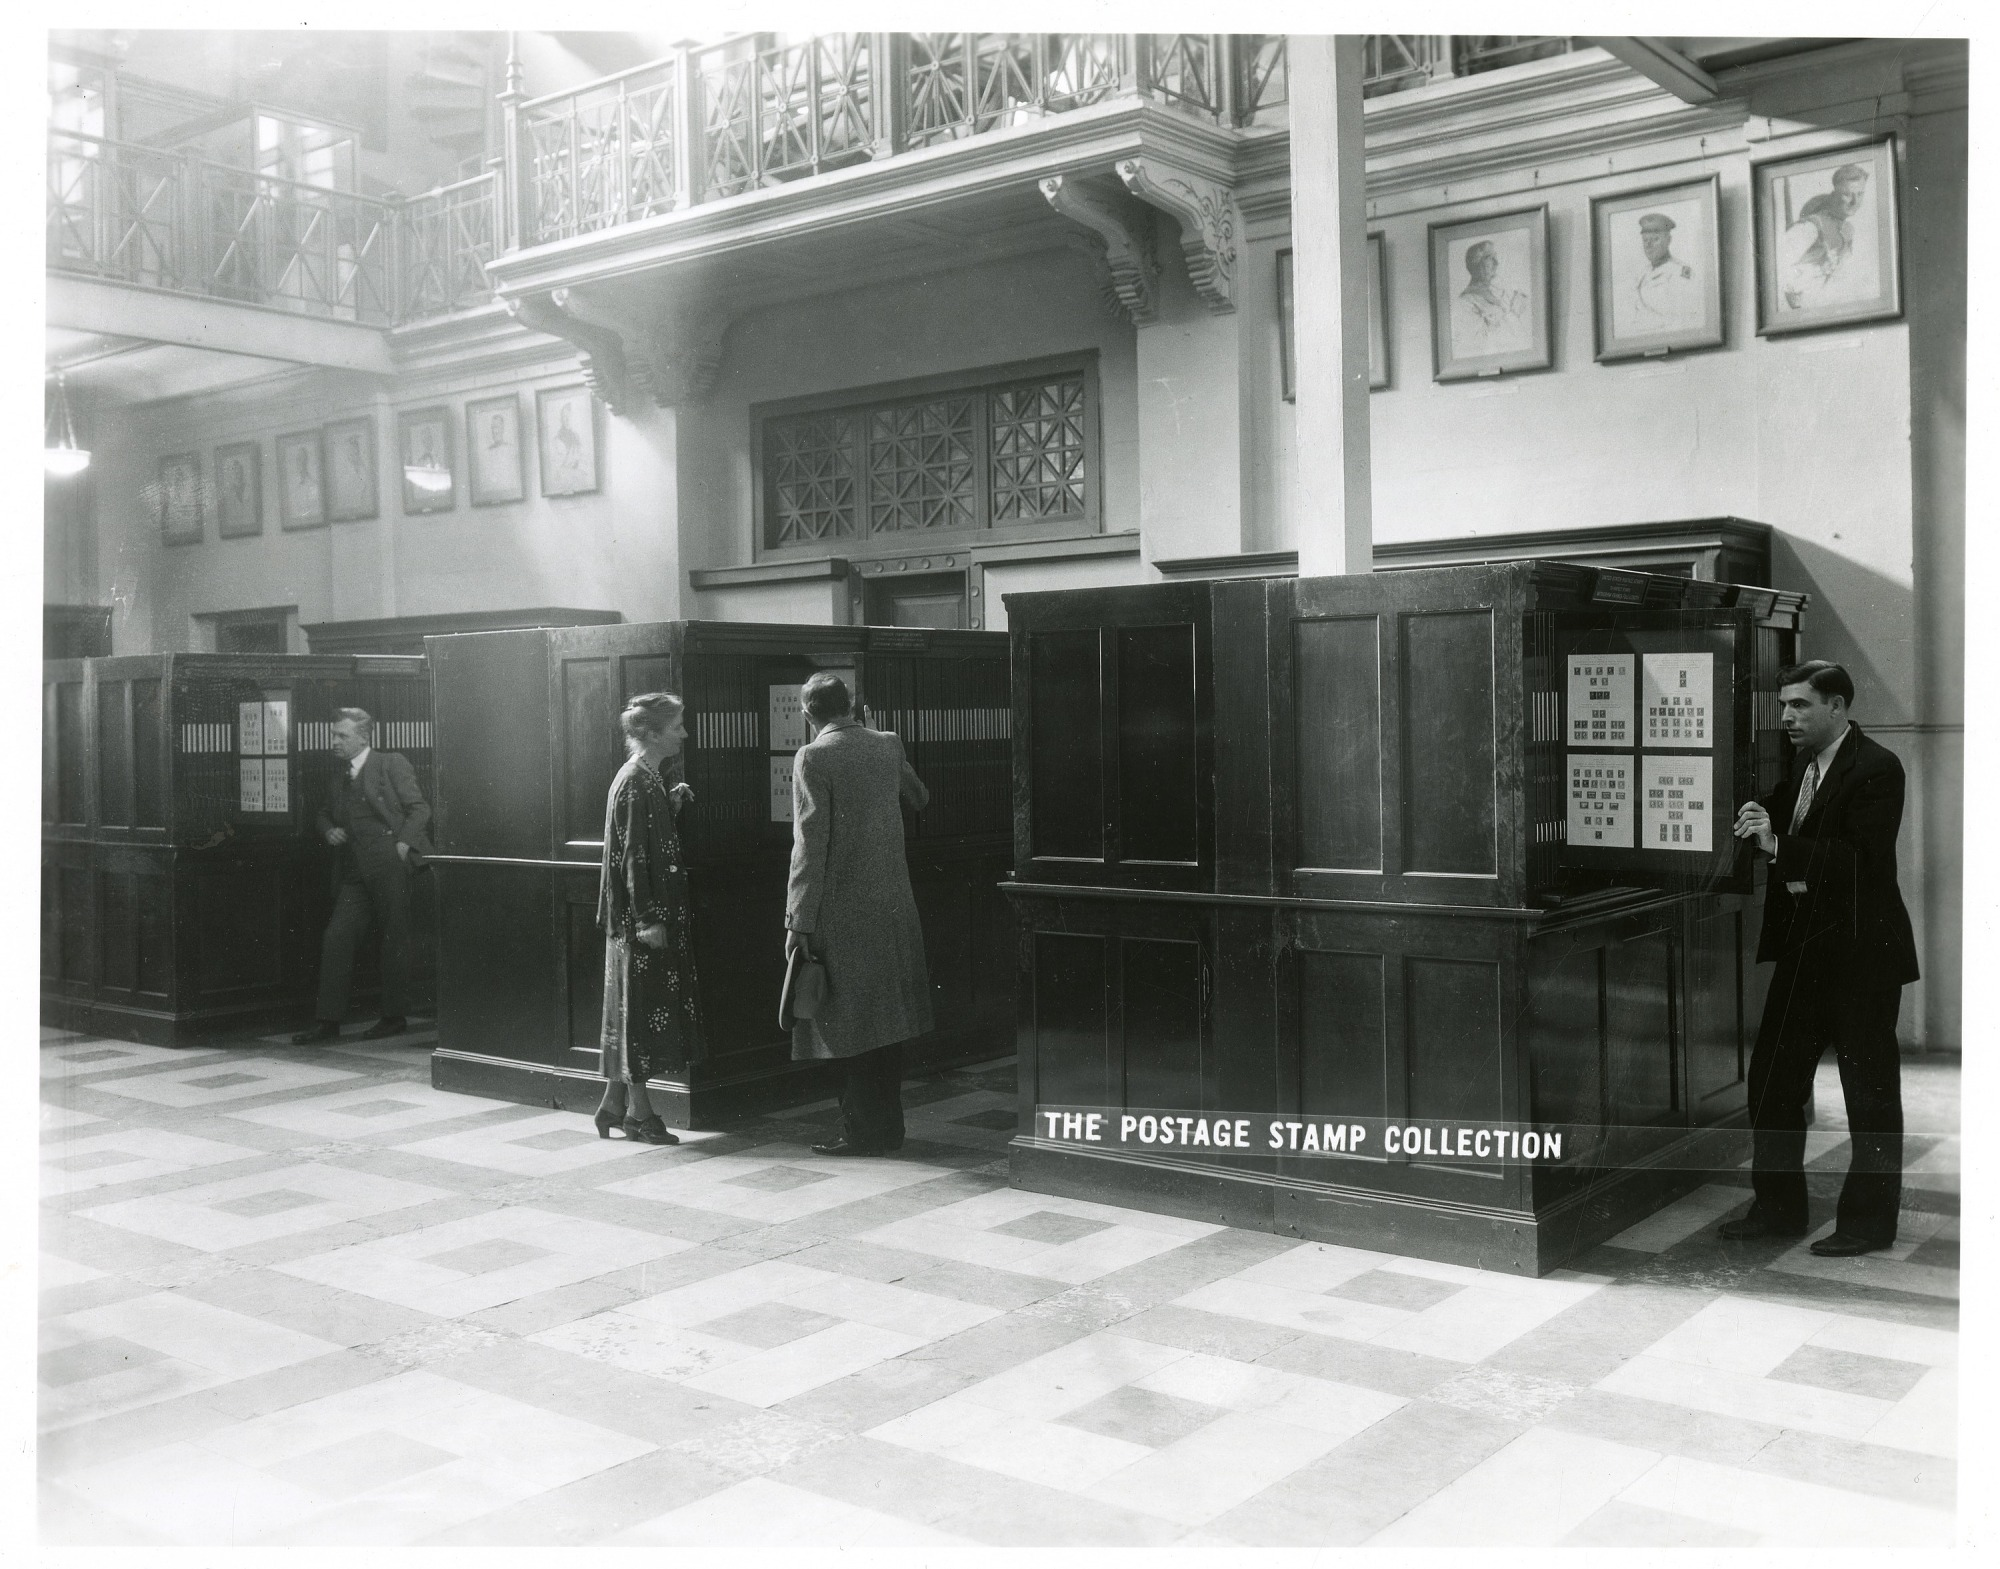 Postage Stamp Collection in A&I Bldg, by Unknown, Smithsonian Archives - History Div, SIA2010-2544 or 11064A or MAH-11064A.